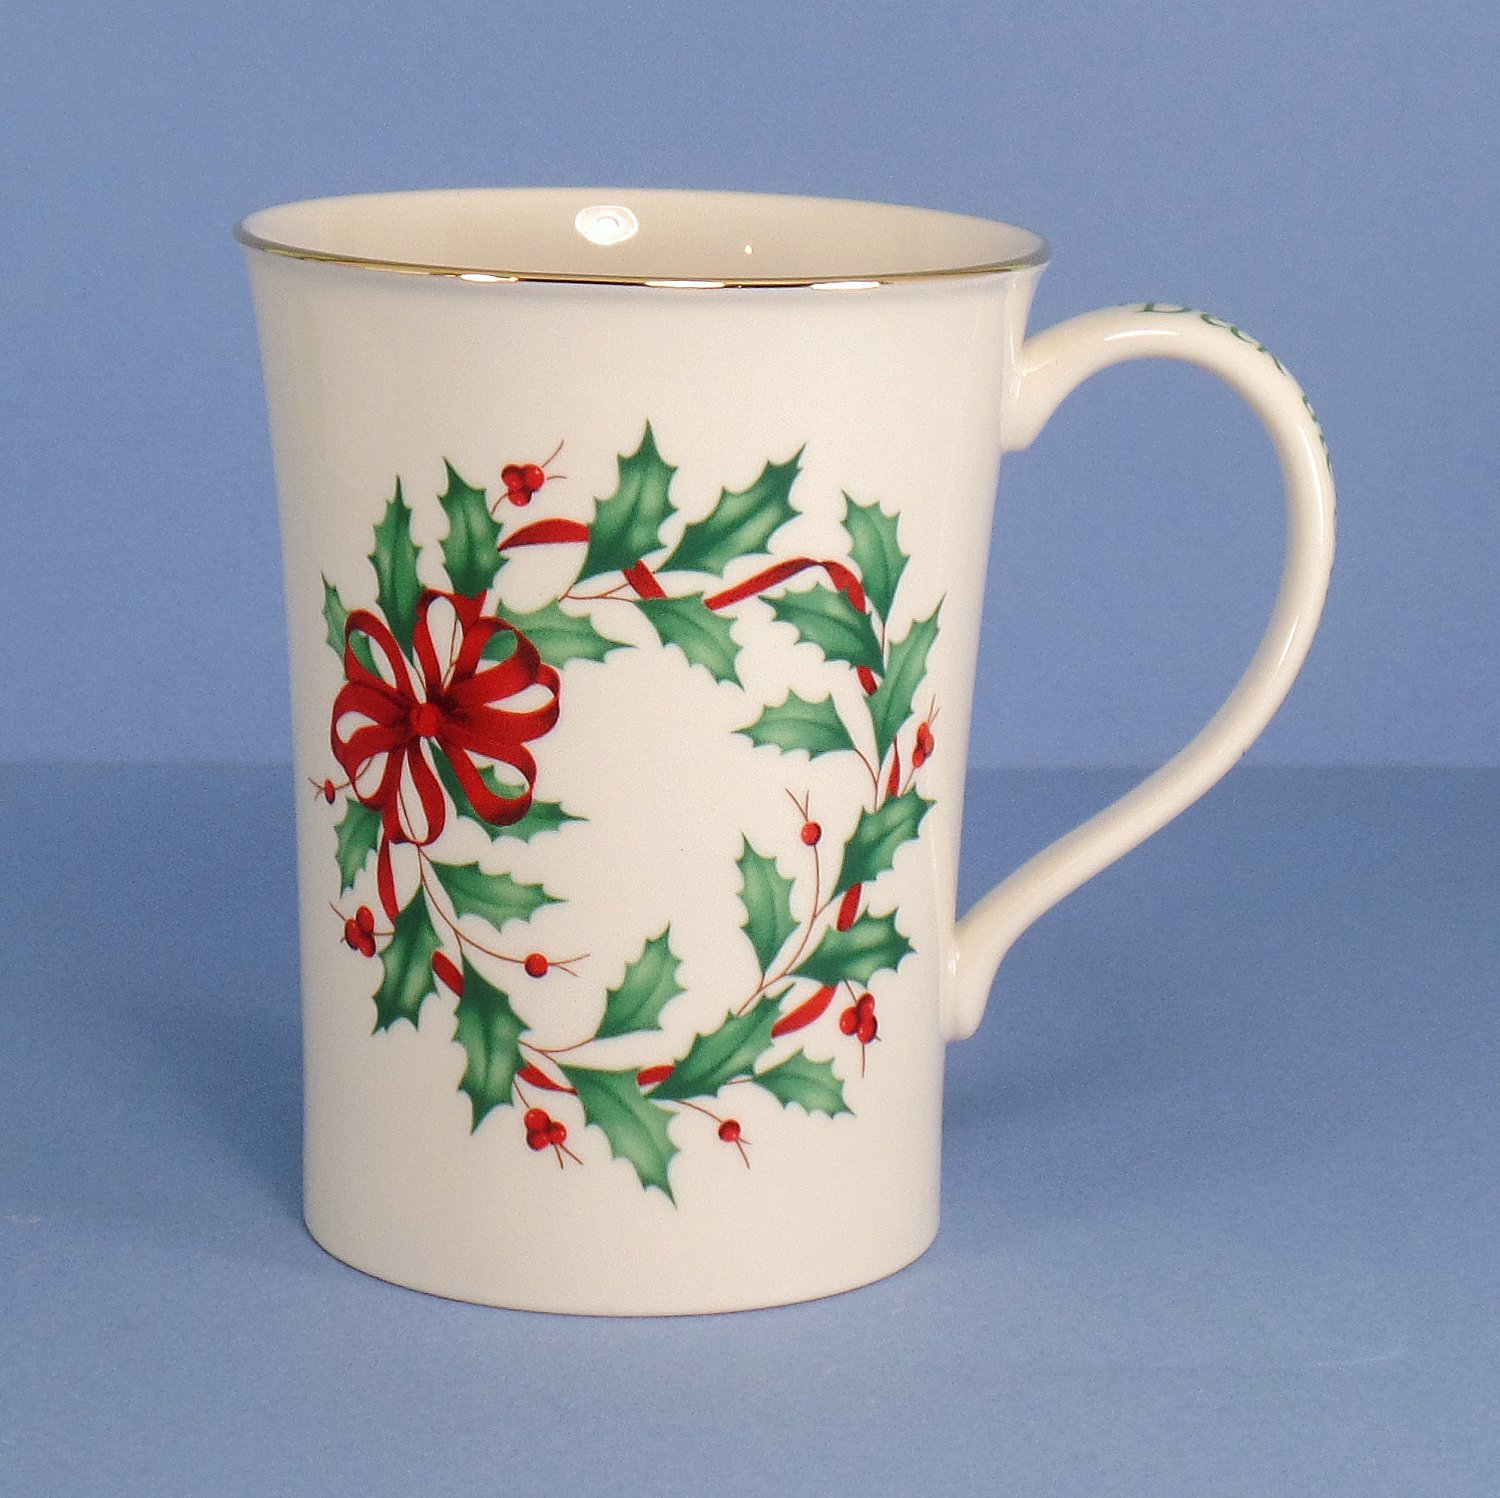 Lenox Holiday (Dimension) Accent Mug (Deck The Halls)